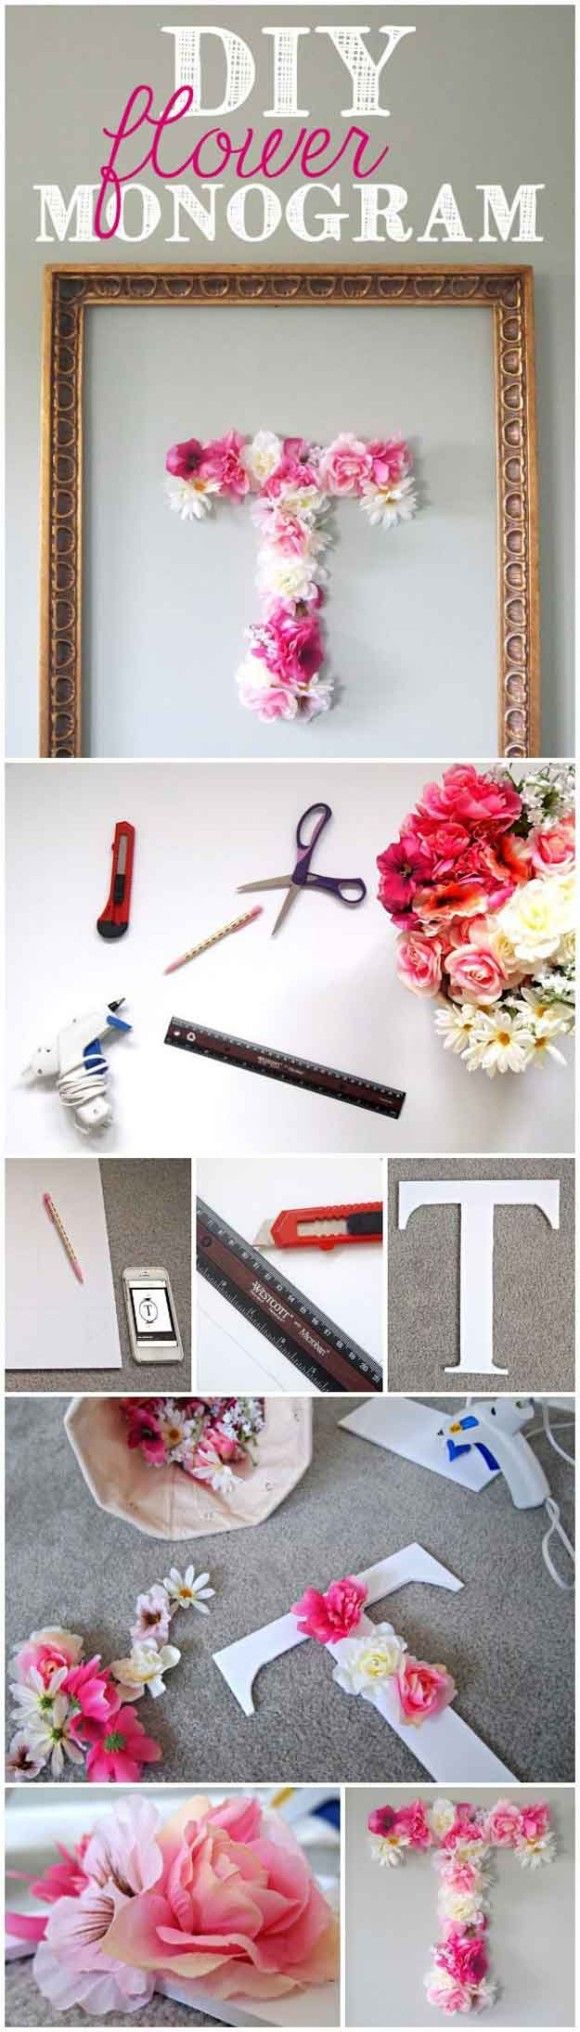 Best 25 cute desk decor ideas on pinterest double room - Bedroom decorations diy ...